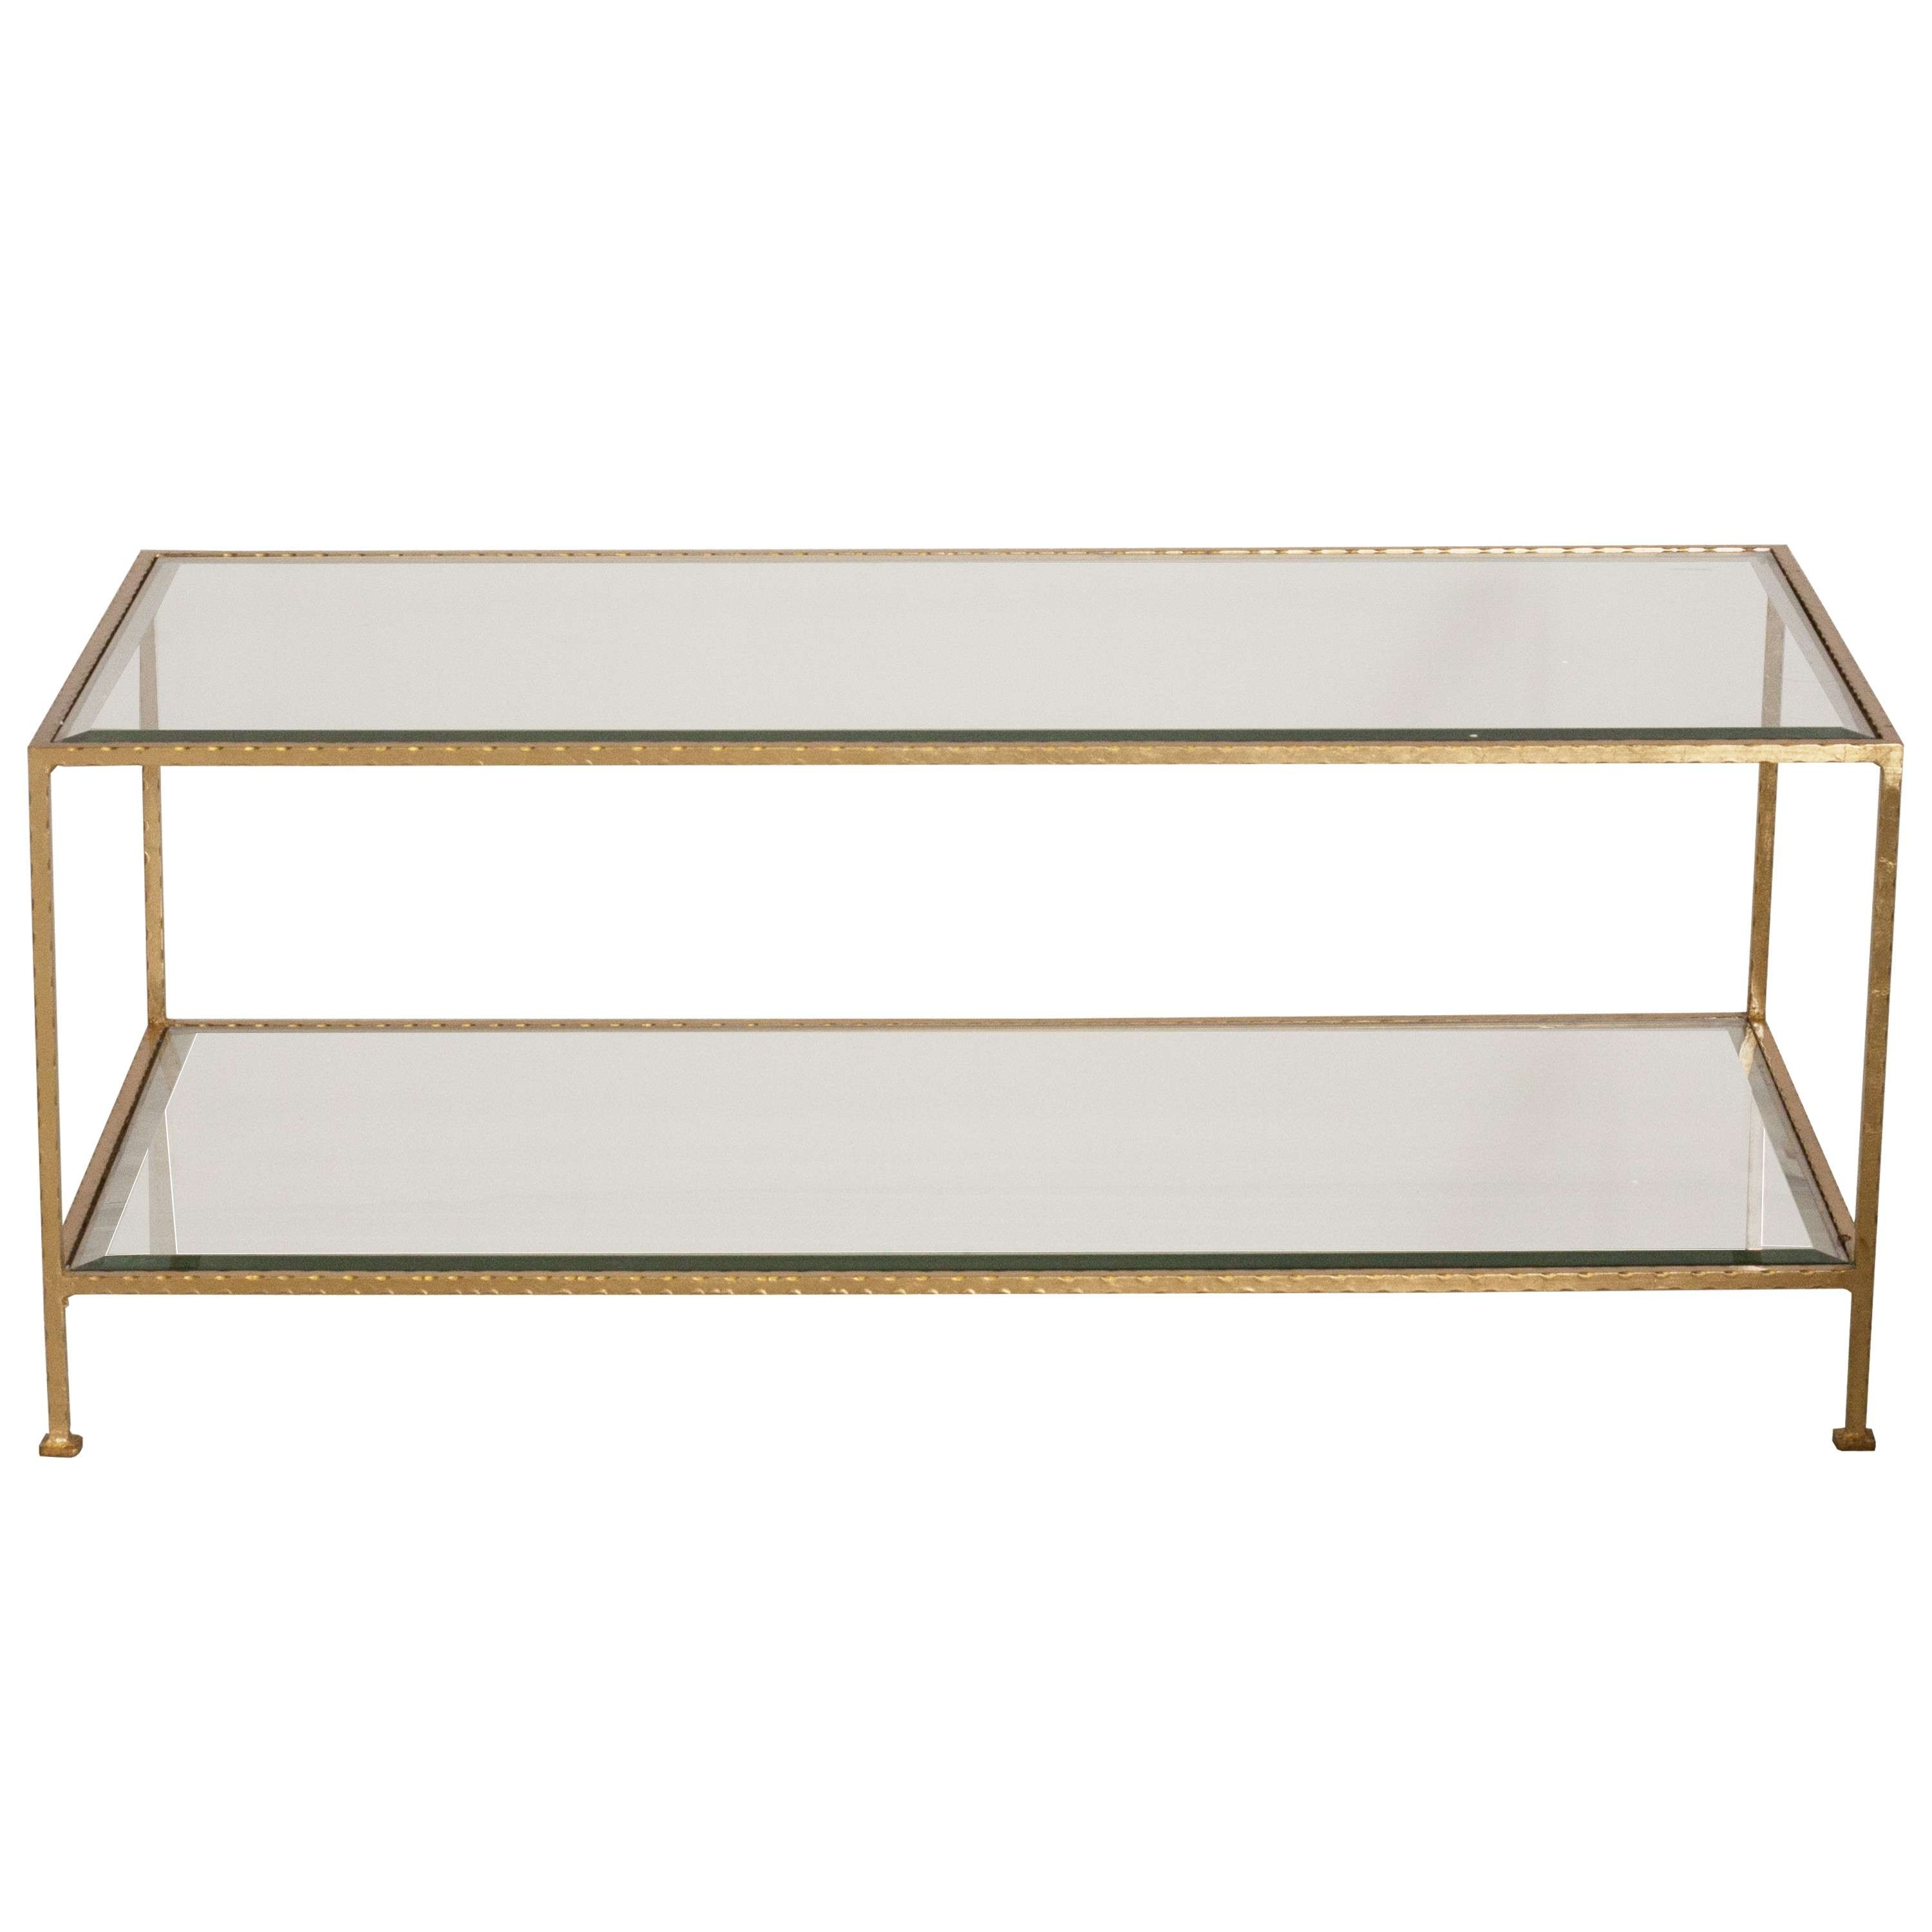 Coffee Tables : Elegant Clear And Golden Rectangle Traditional With Regard To Fashionable Coffee Tables Glass And Metal (View 5 of 20)